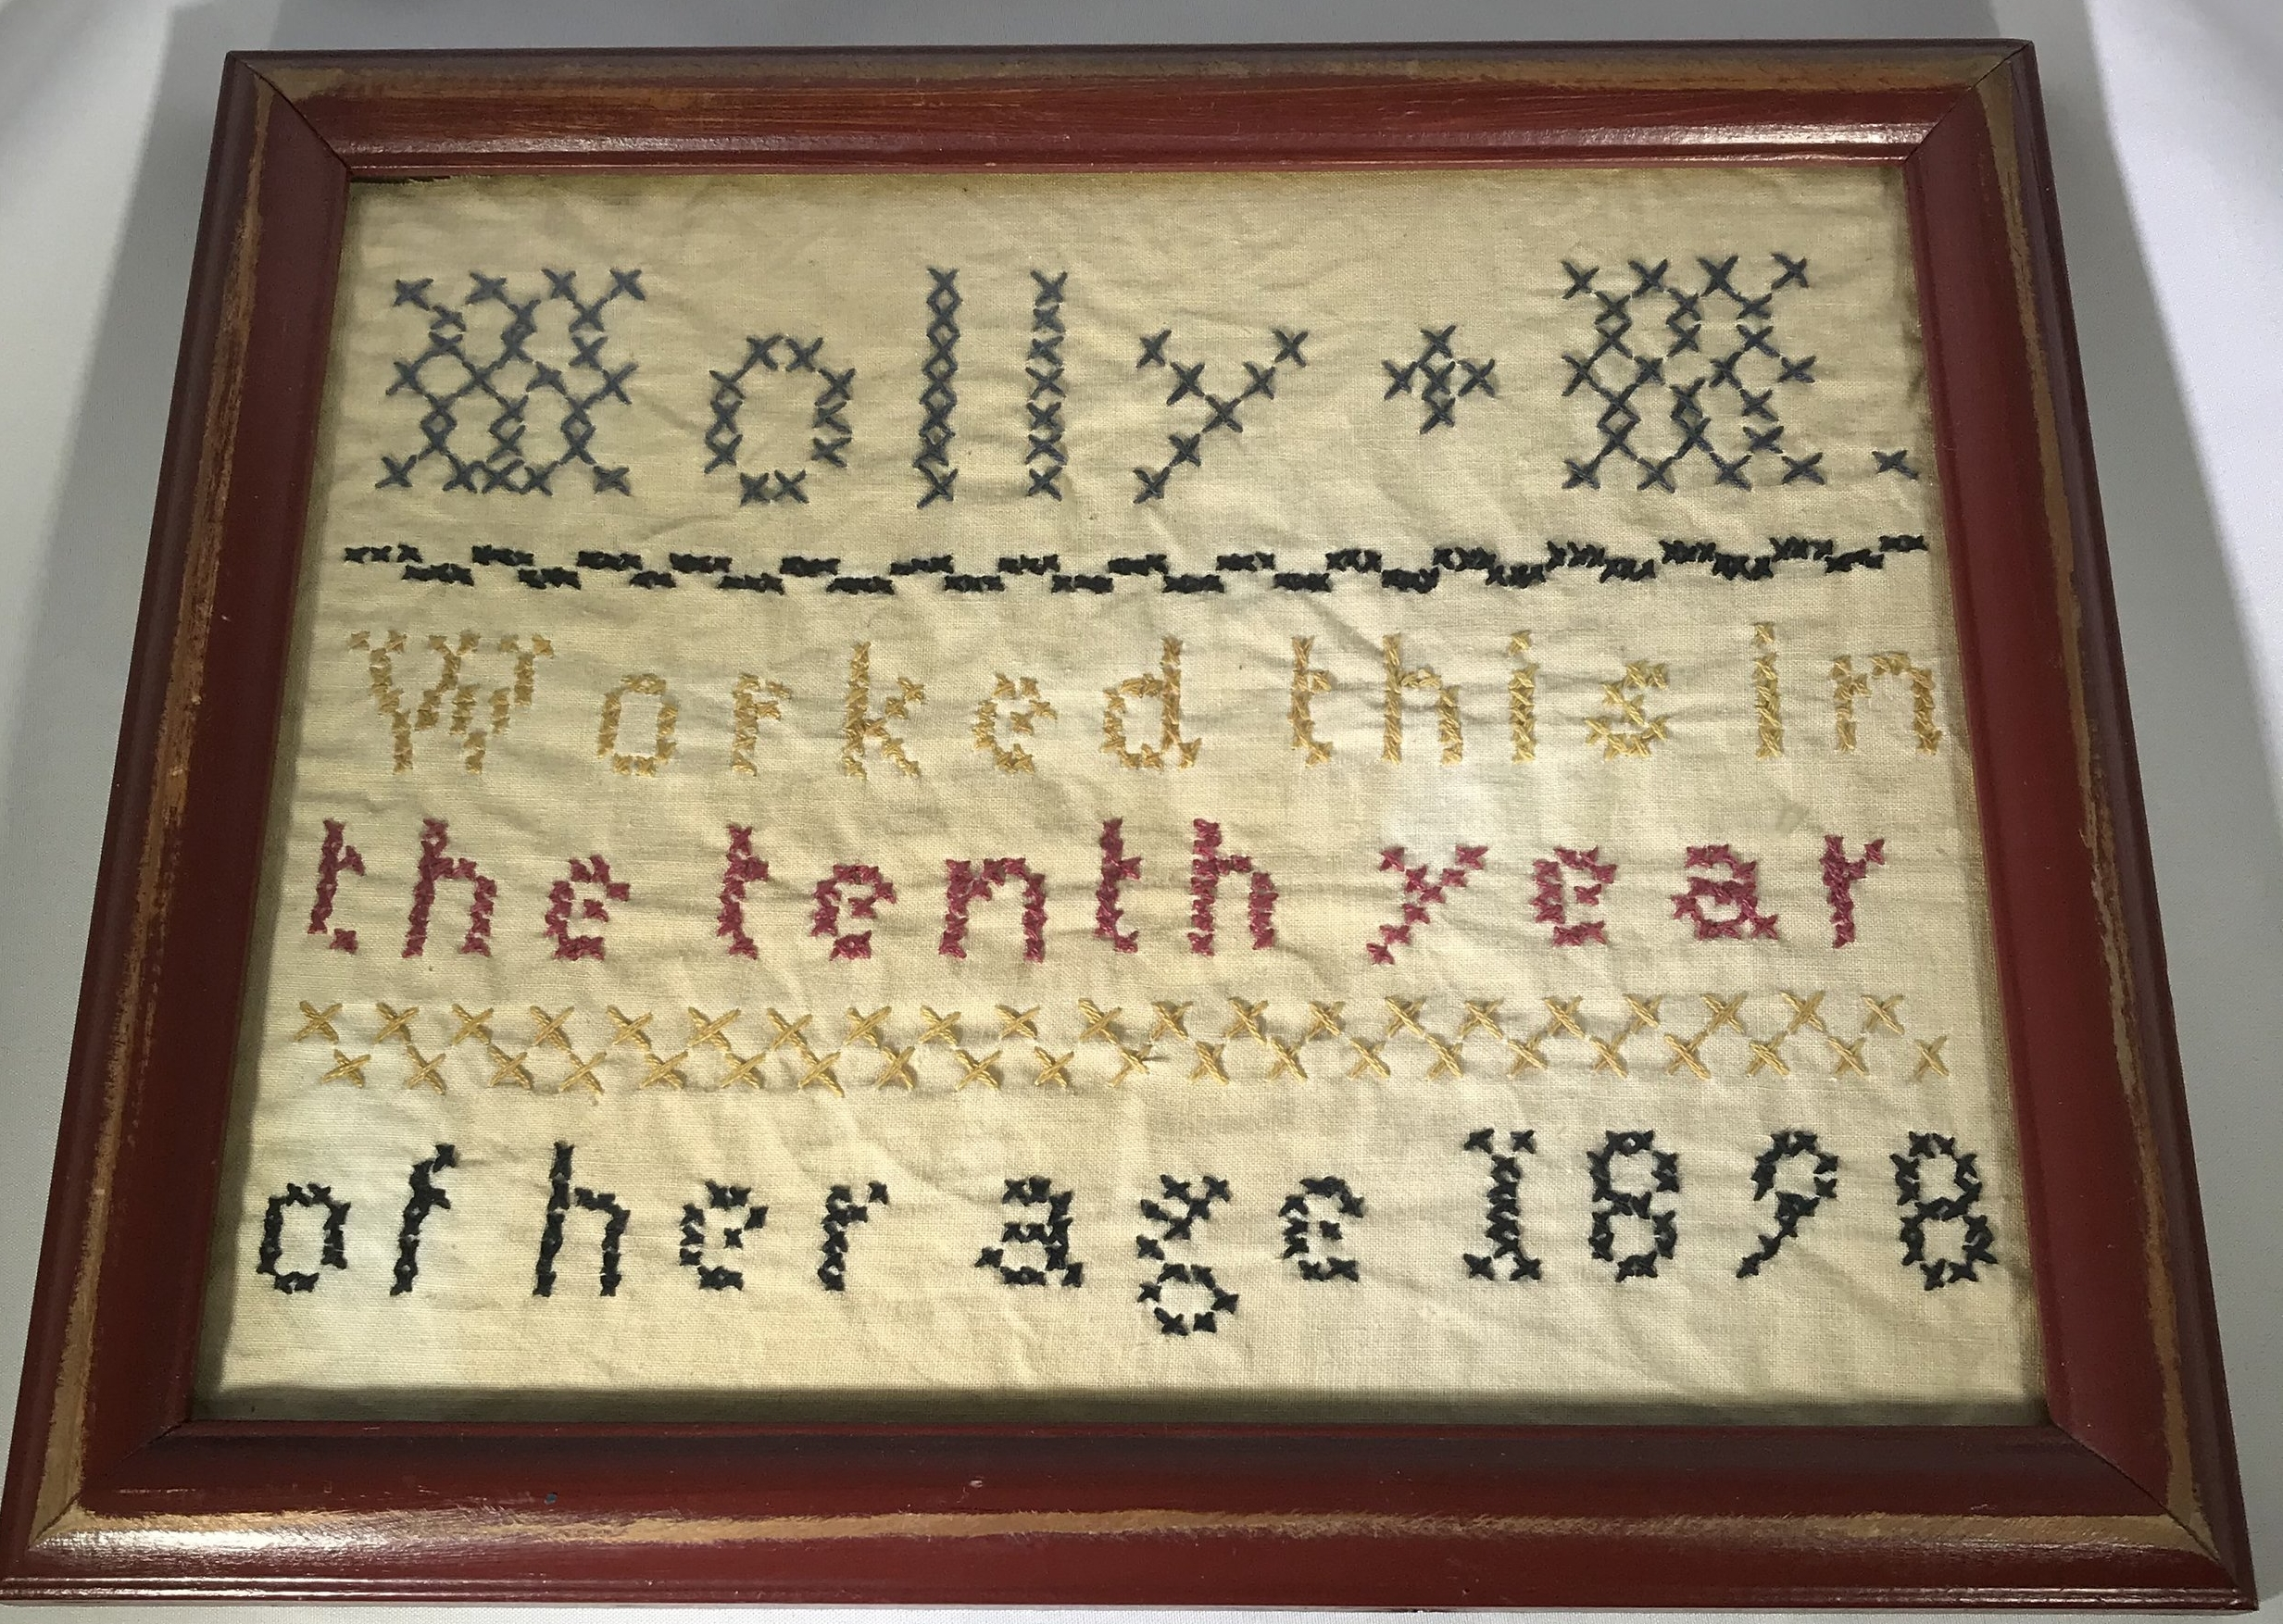 """Molly M. - """"Molly M. worked this in the tenth year of her age 1898"""""""